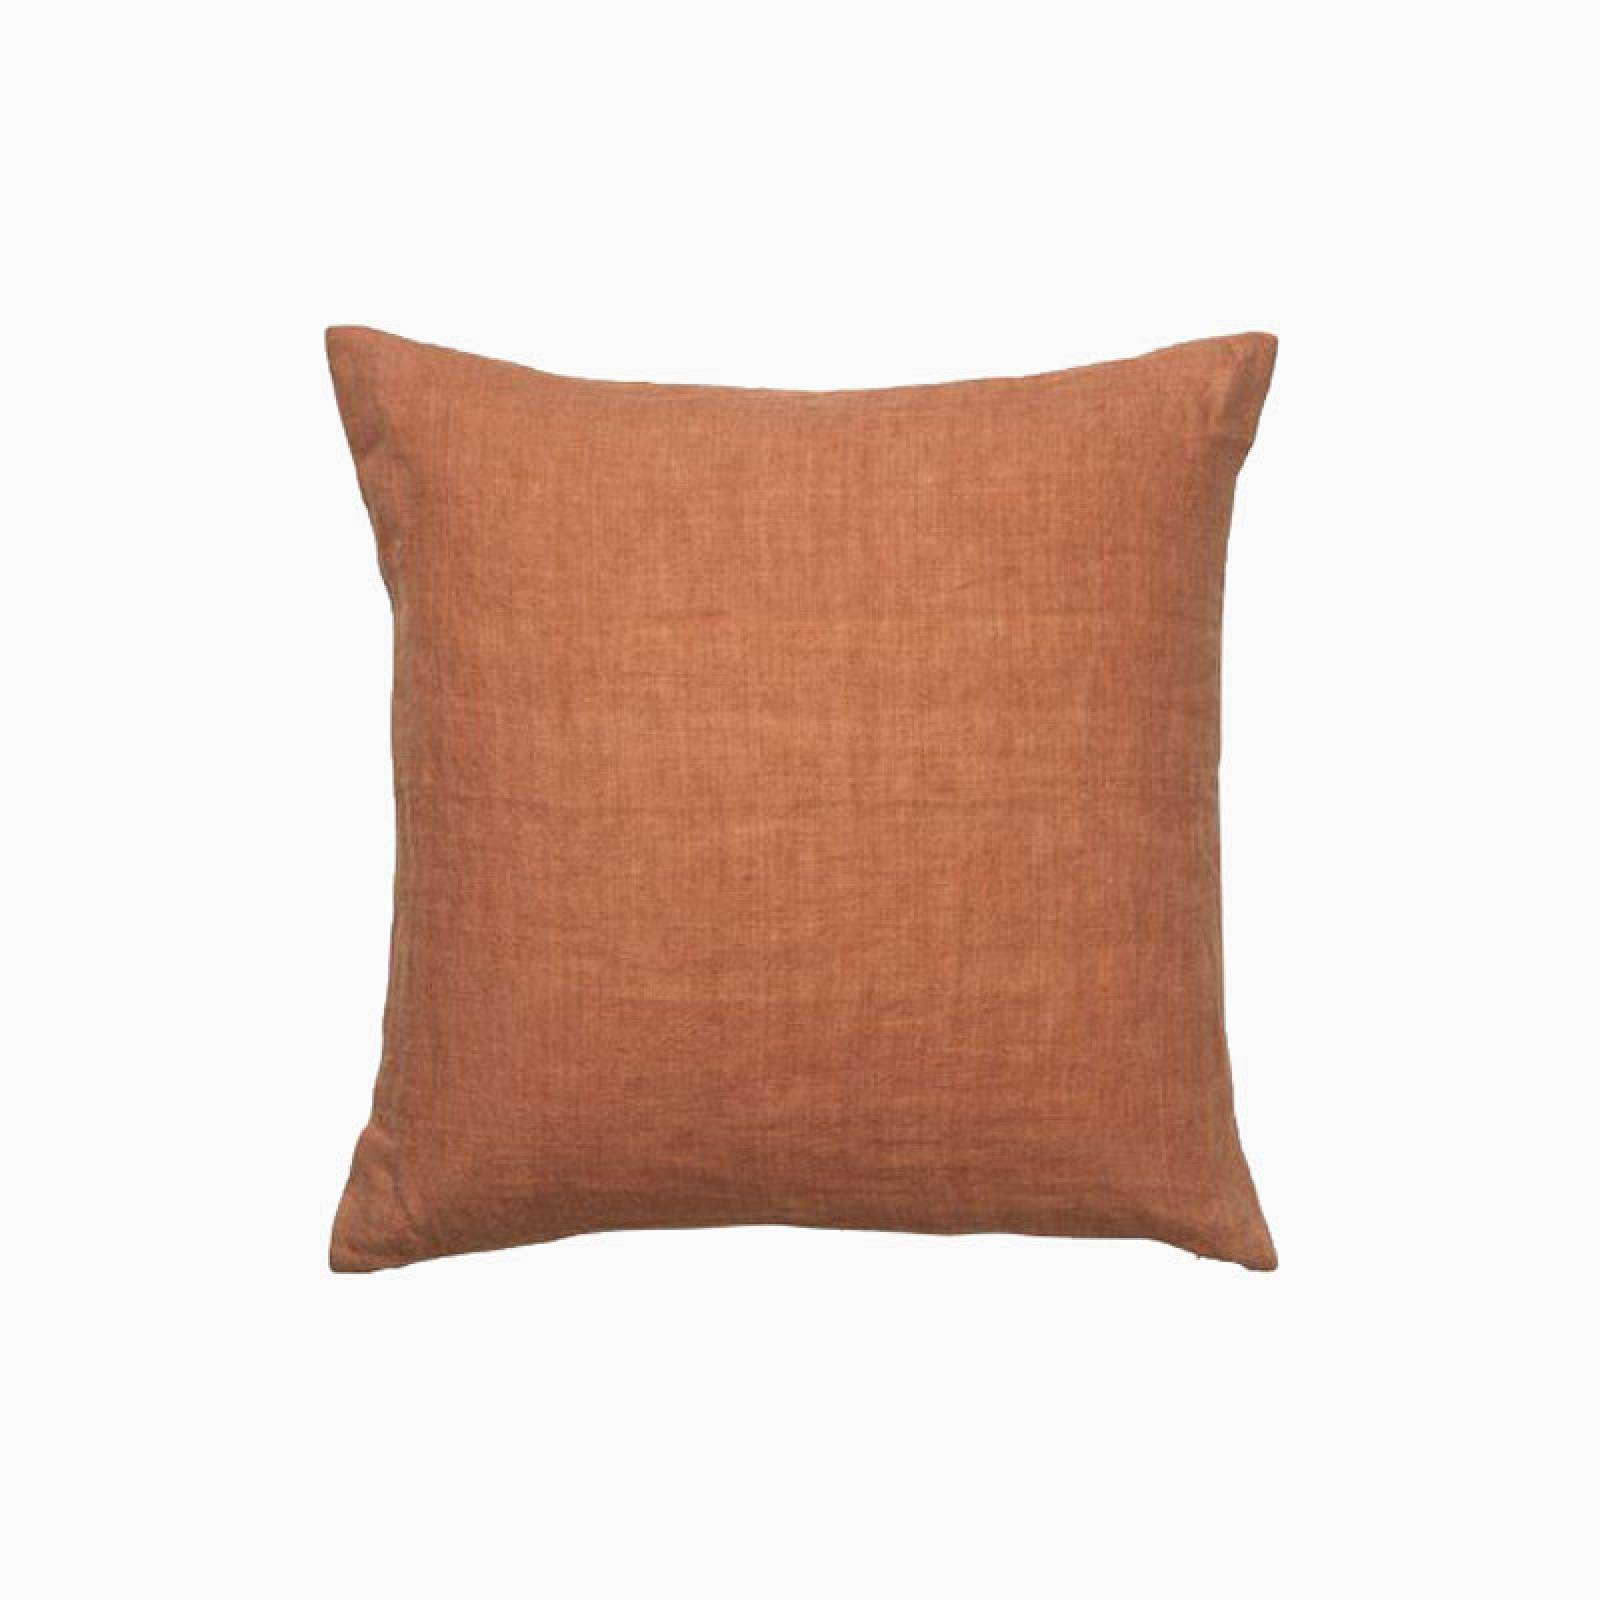 Square Linen Cushion In Spice